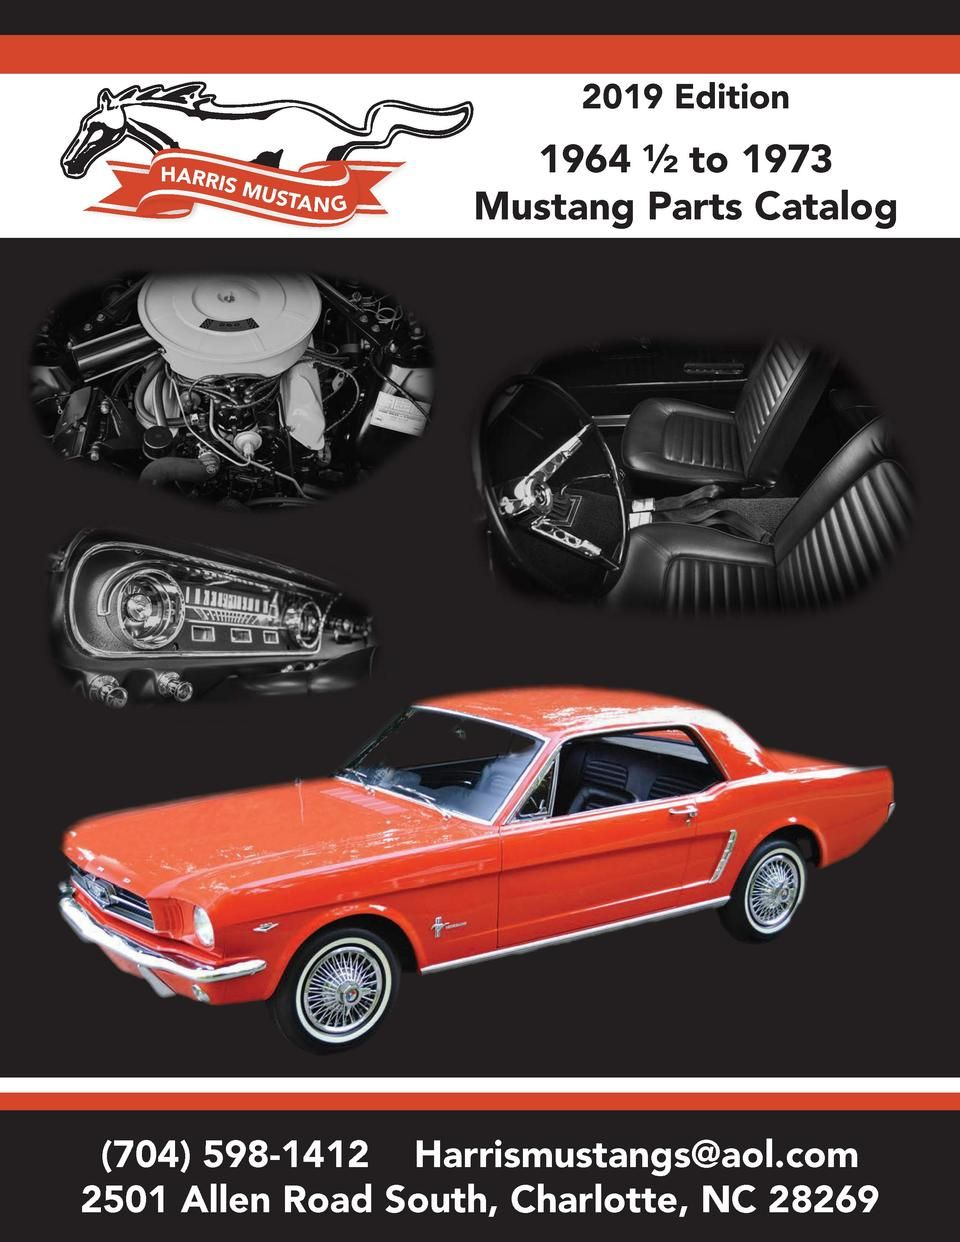 1967 Ford Mustang Fastback Official T-shirt 7055 automotive art